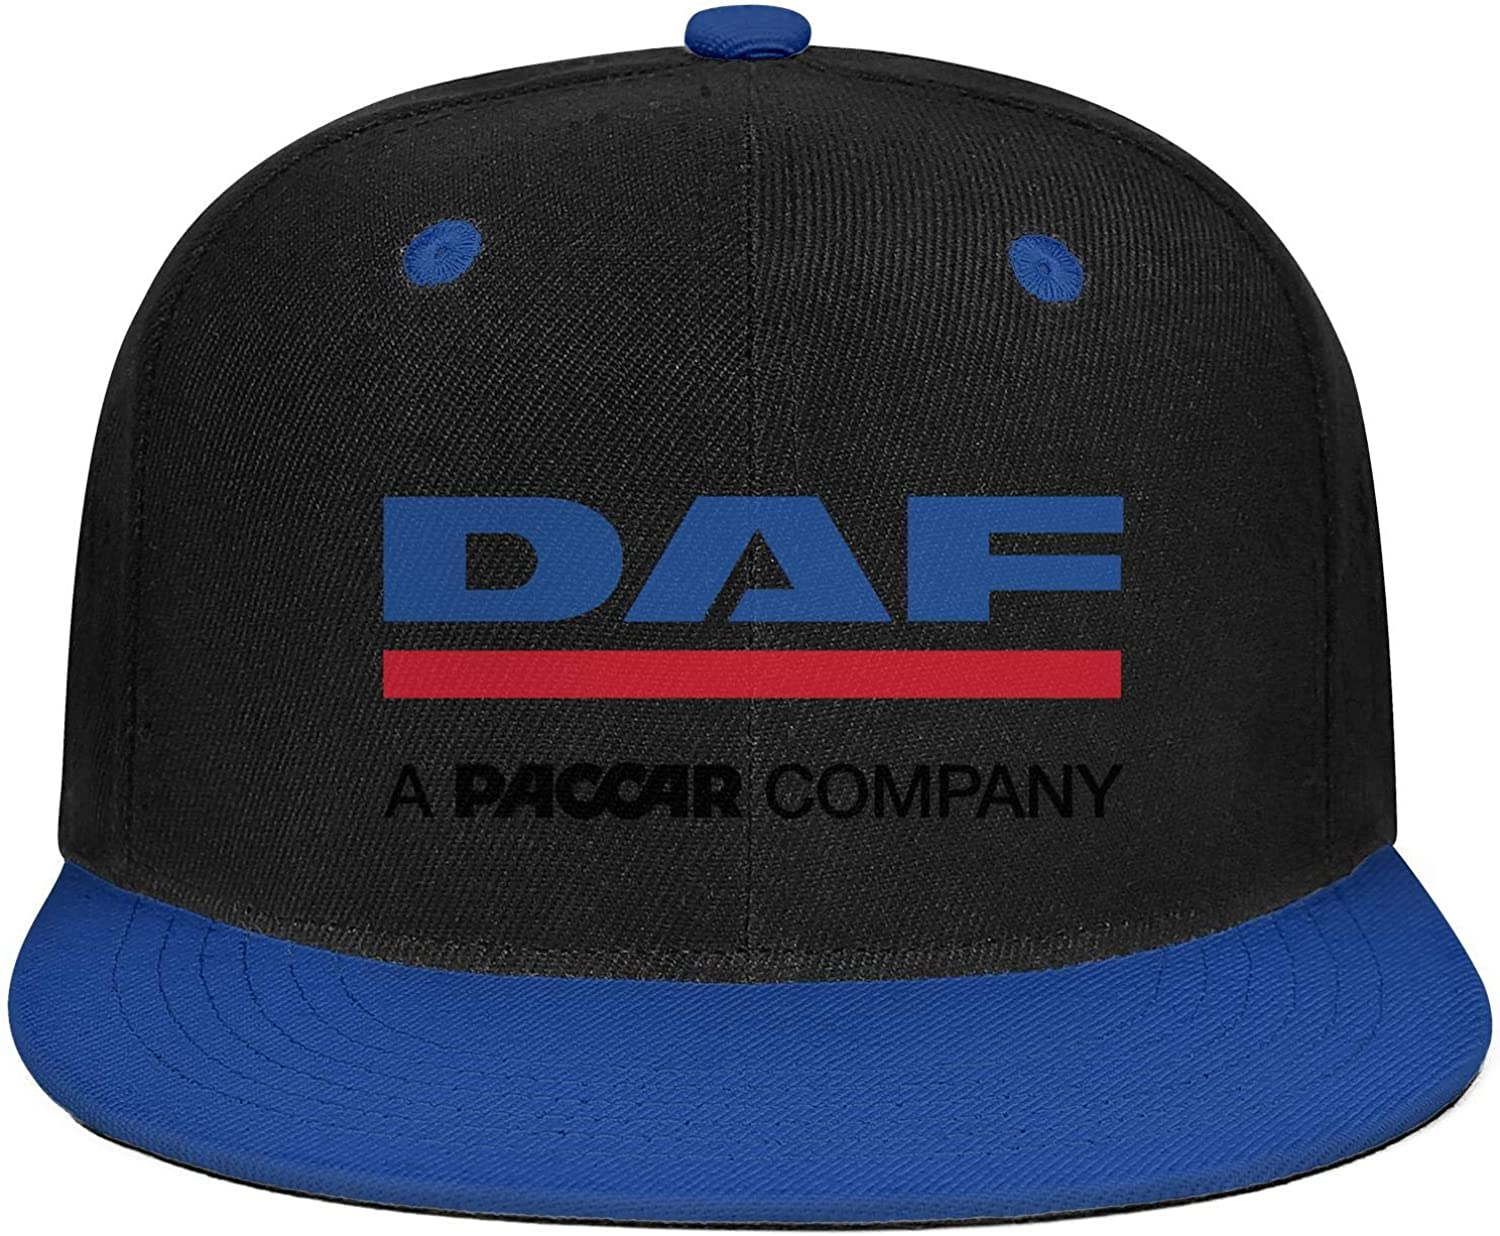 DAF truck Baseball Unisex Cap Blue color Adjustable size! 100/% cotton